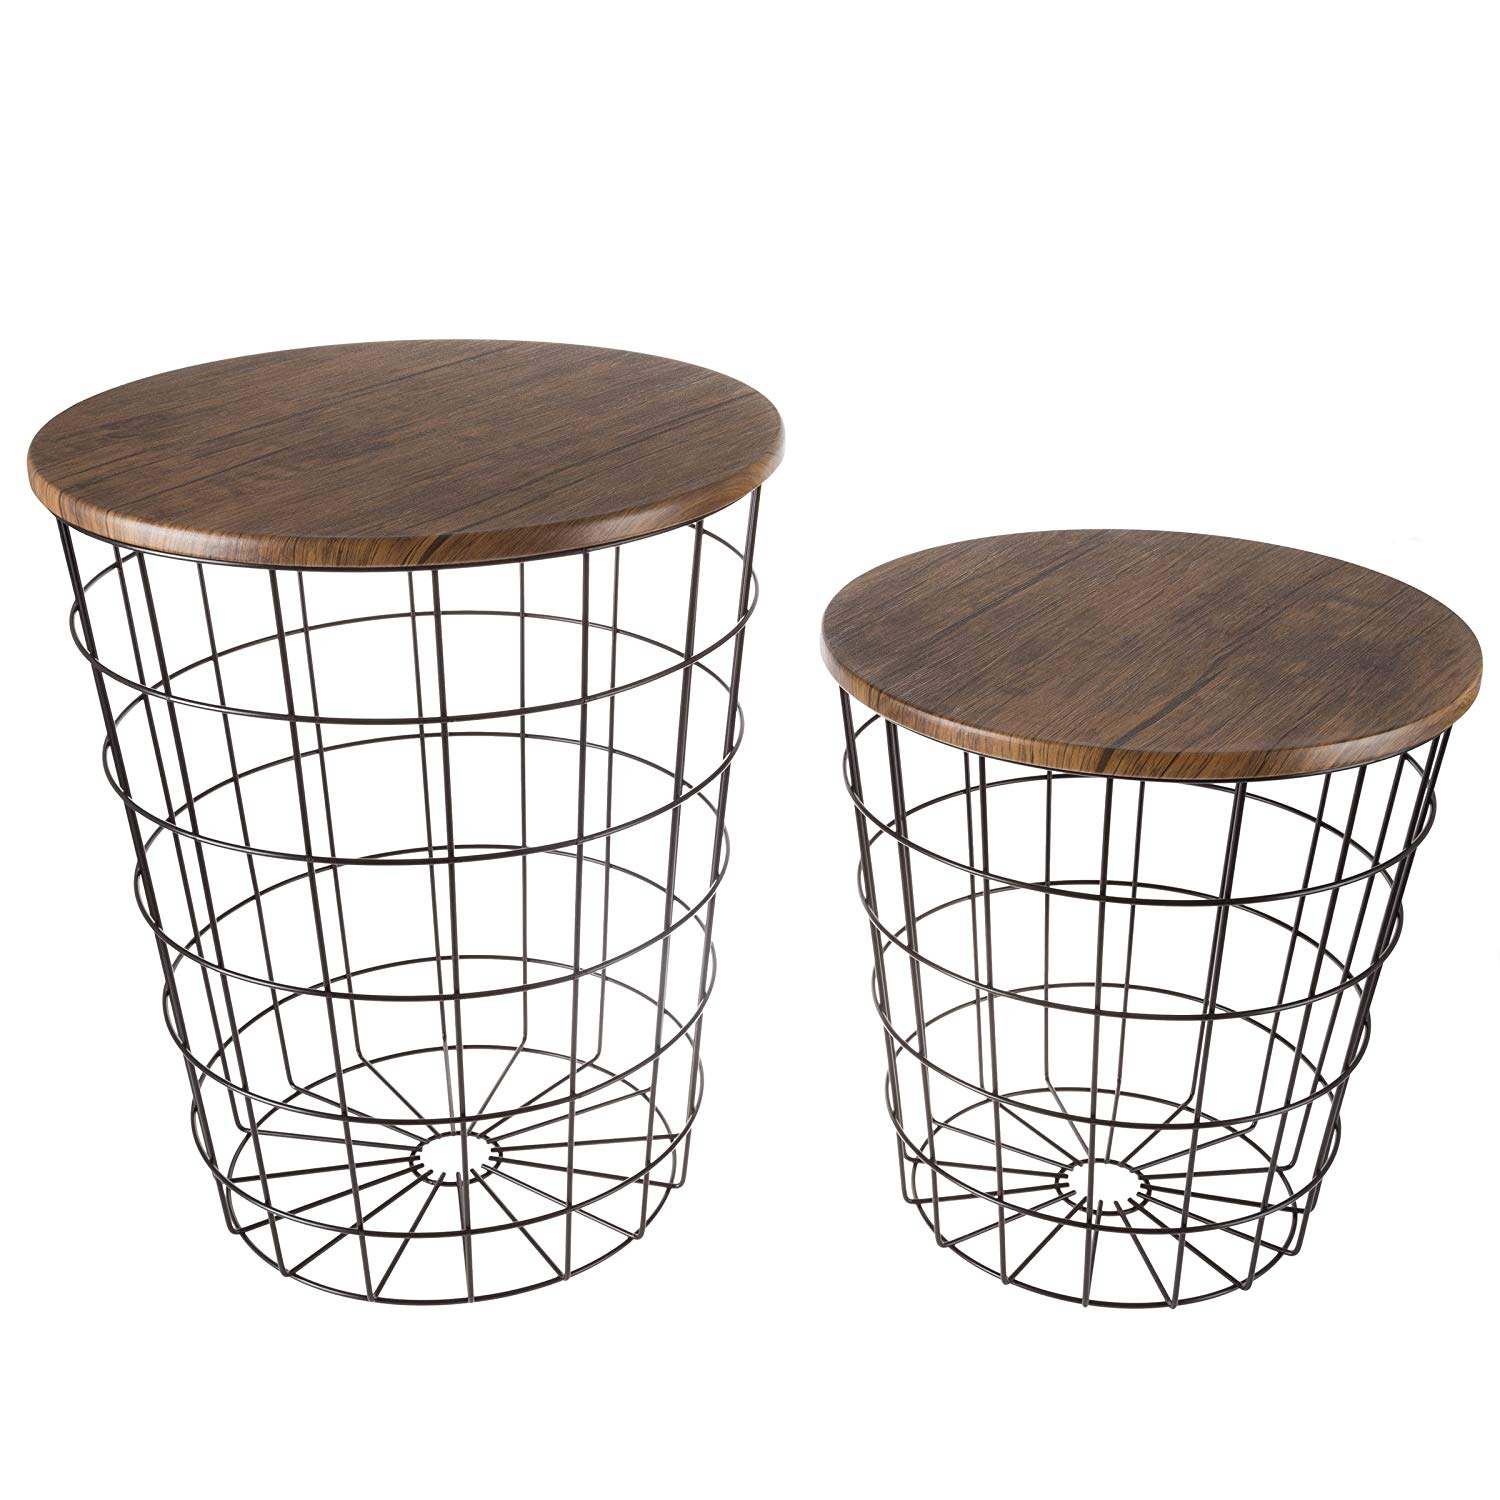 lavish home endtbl set nesting end storage black accent table with convertible round metal basket wood veneer top side tables kitchen colorful patio furniture dining room and